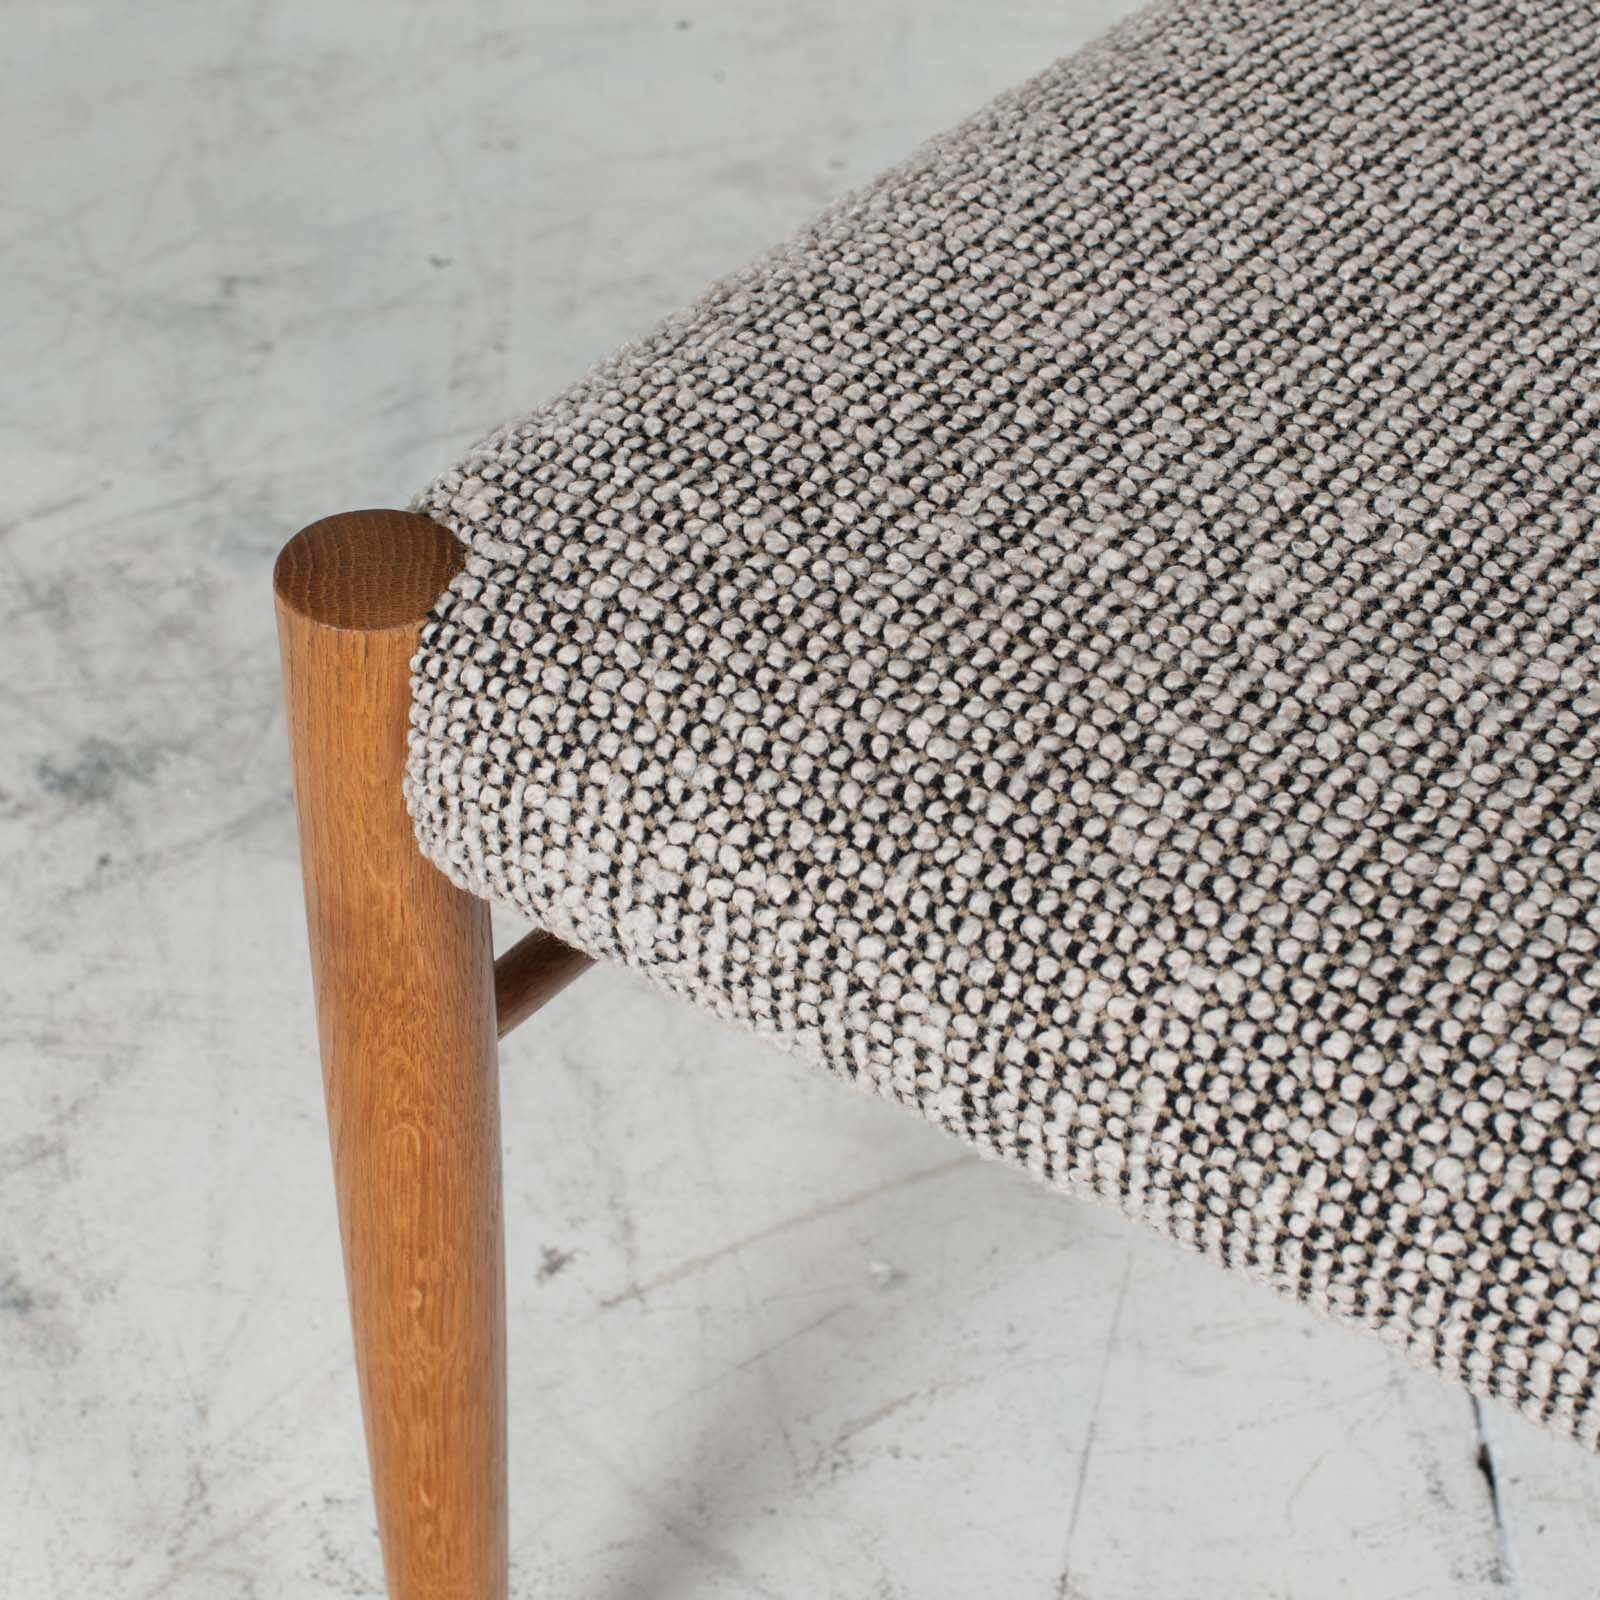 Set 6 Dining Chairs By H.w.klein In Oak And Textured Grey Wool 1960s Denmark 08